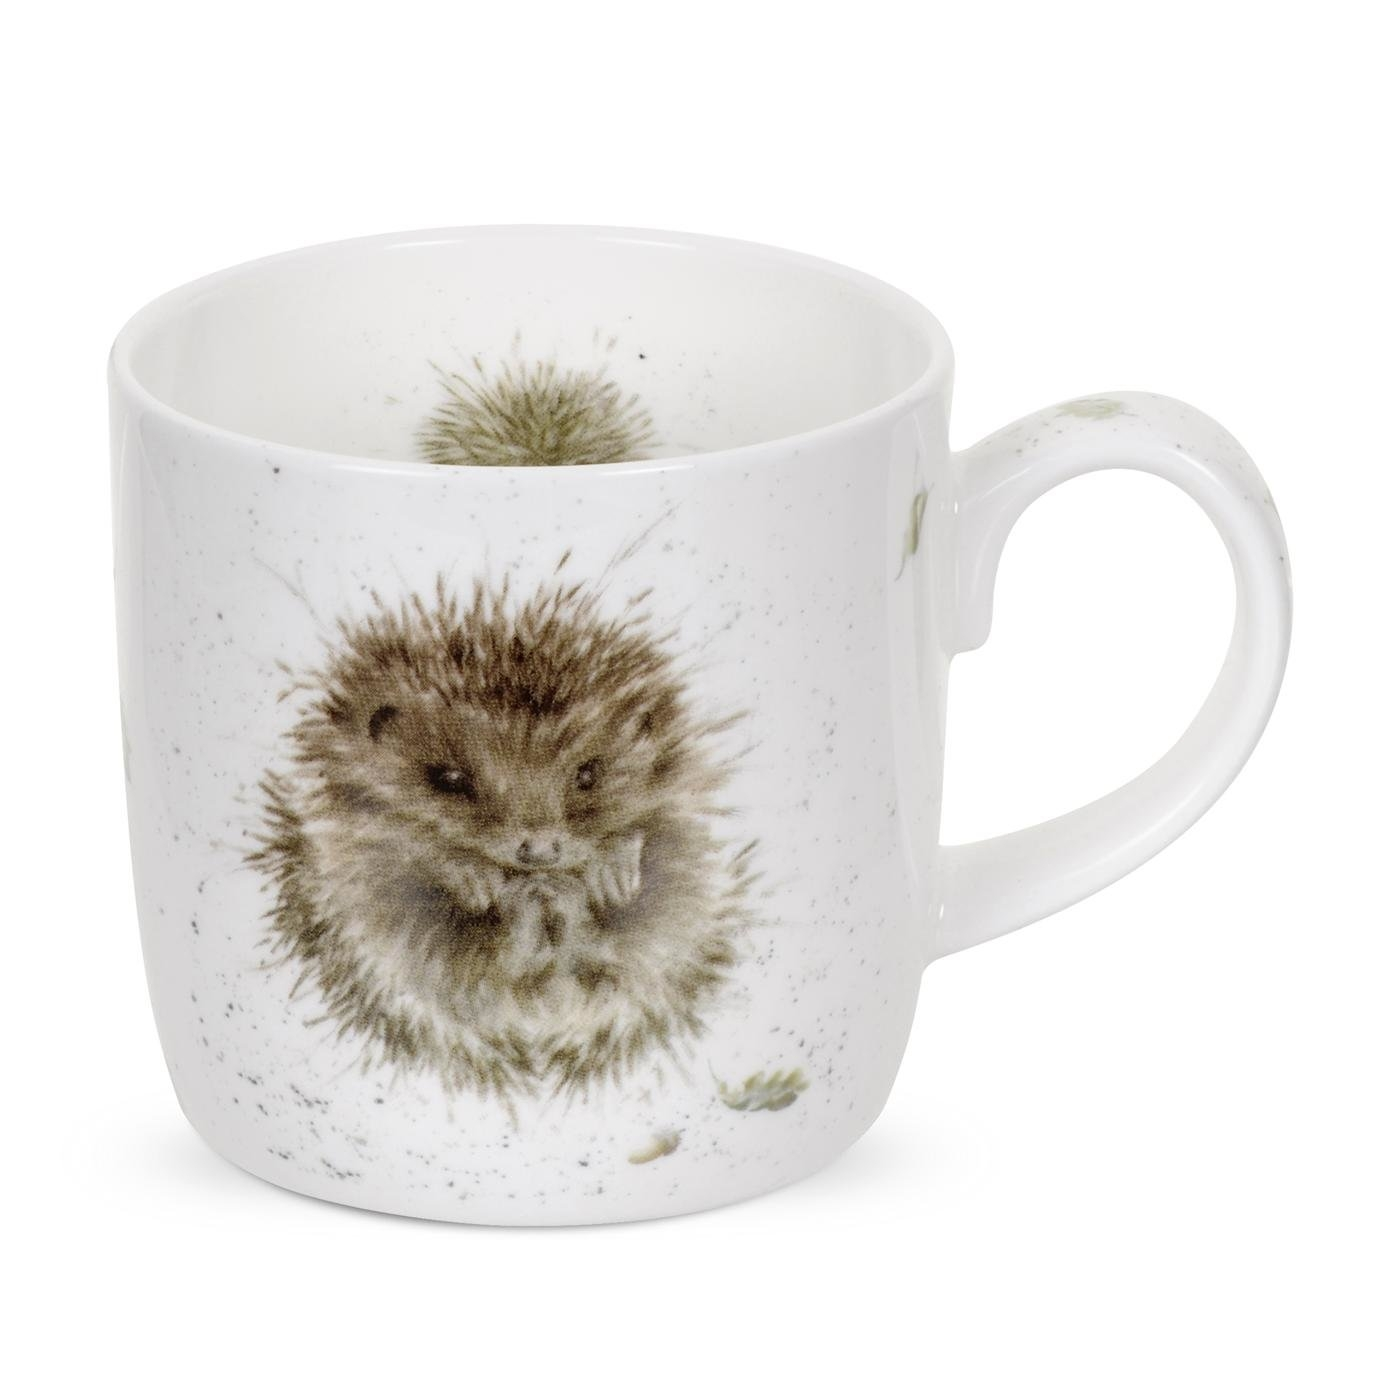 Royal Worcester Wrendale Designs MUG 14 OZ AWAKENING (HEDGEHOG) image number 0